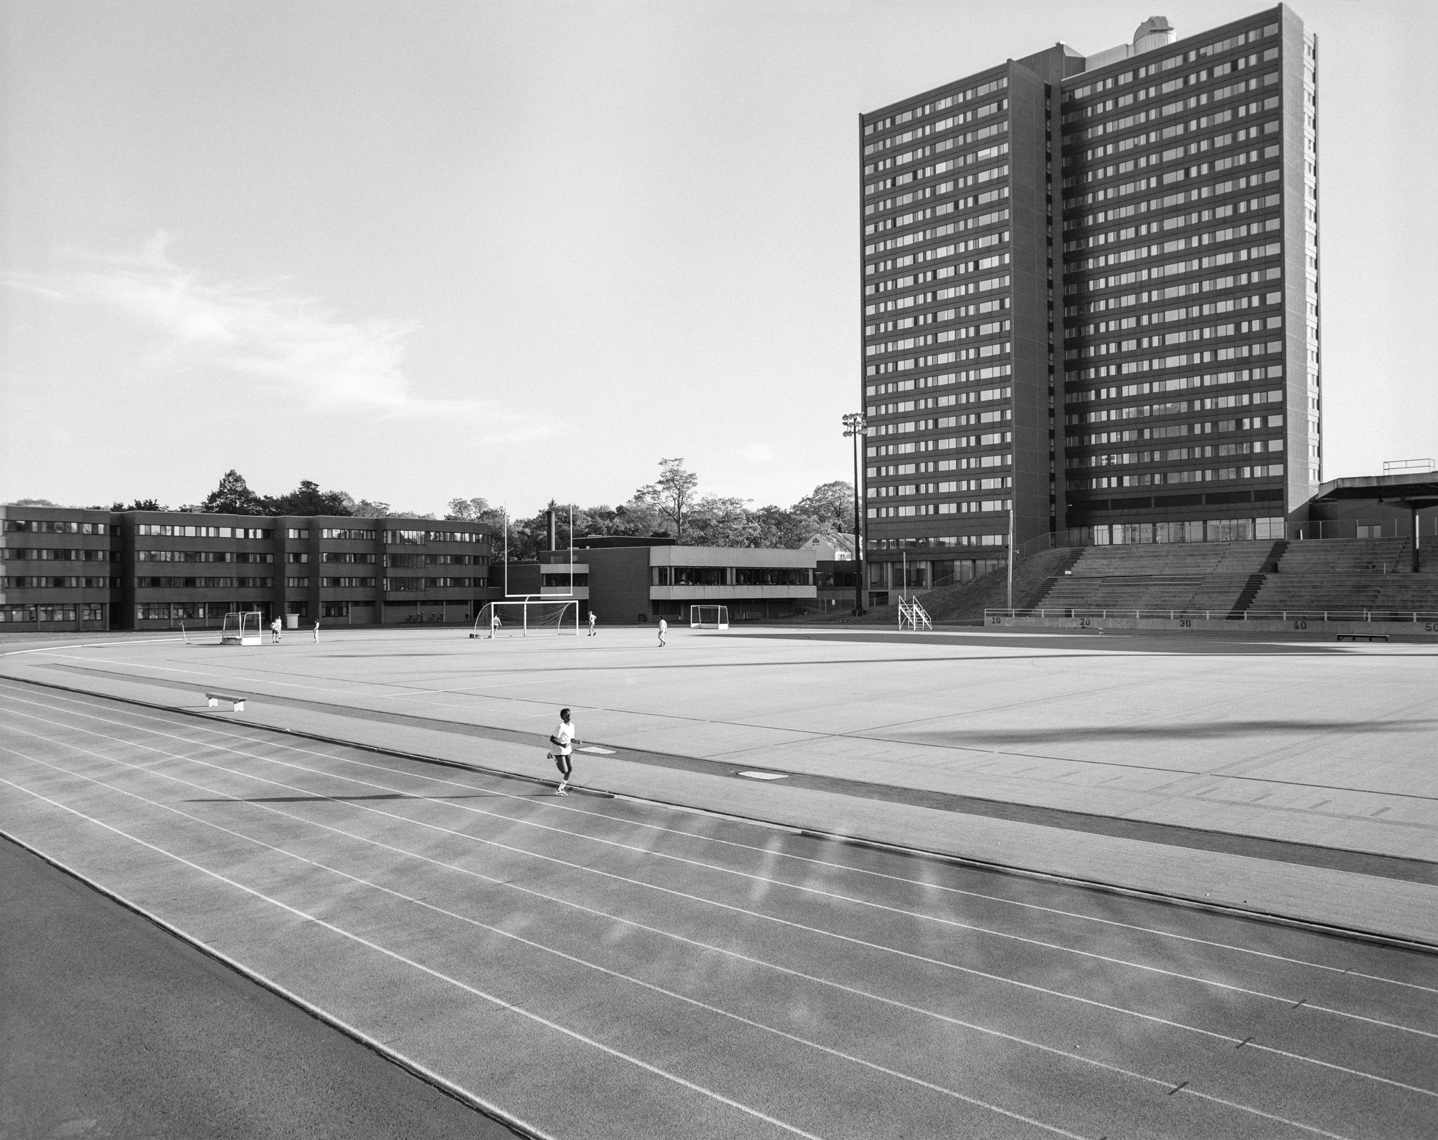 BW88_58_runner_SMU_track-Edit-Edit